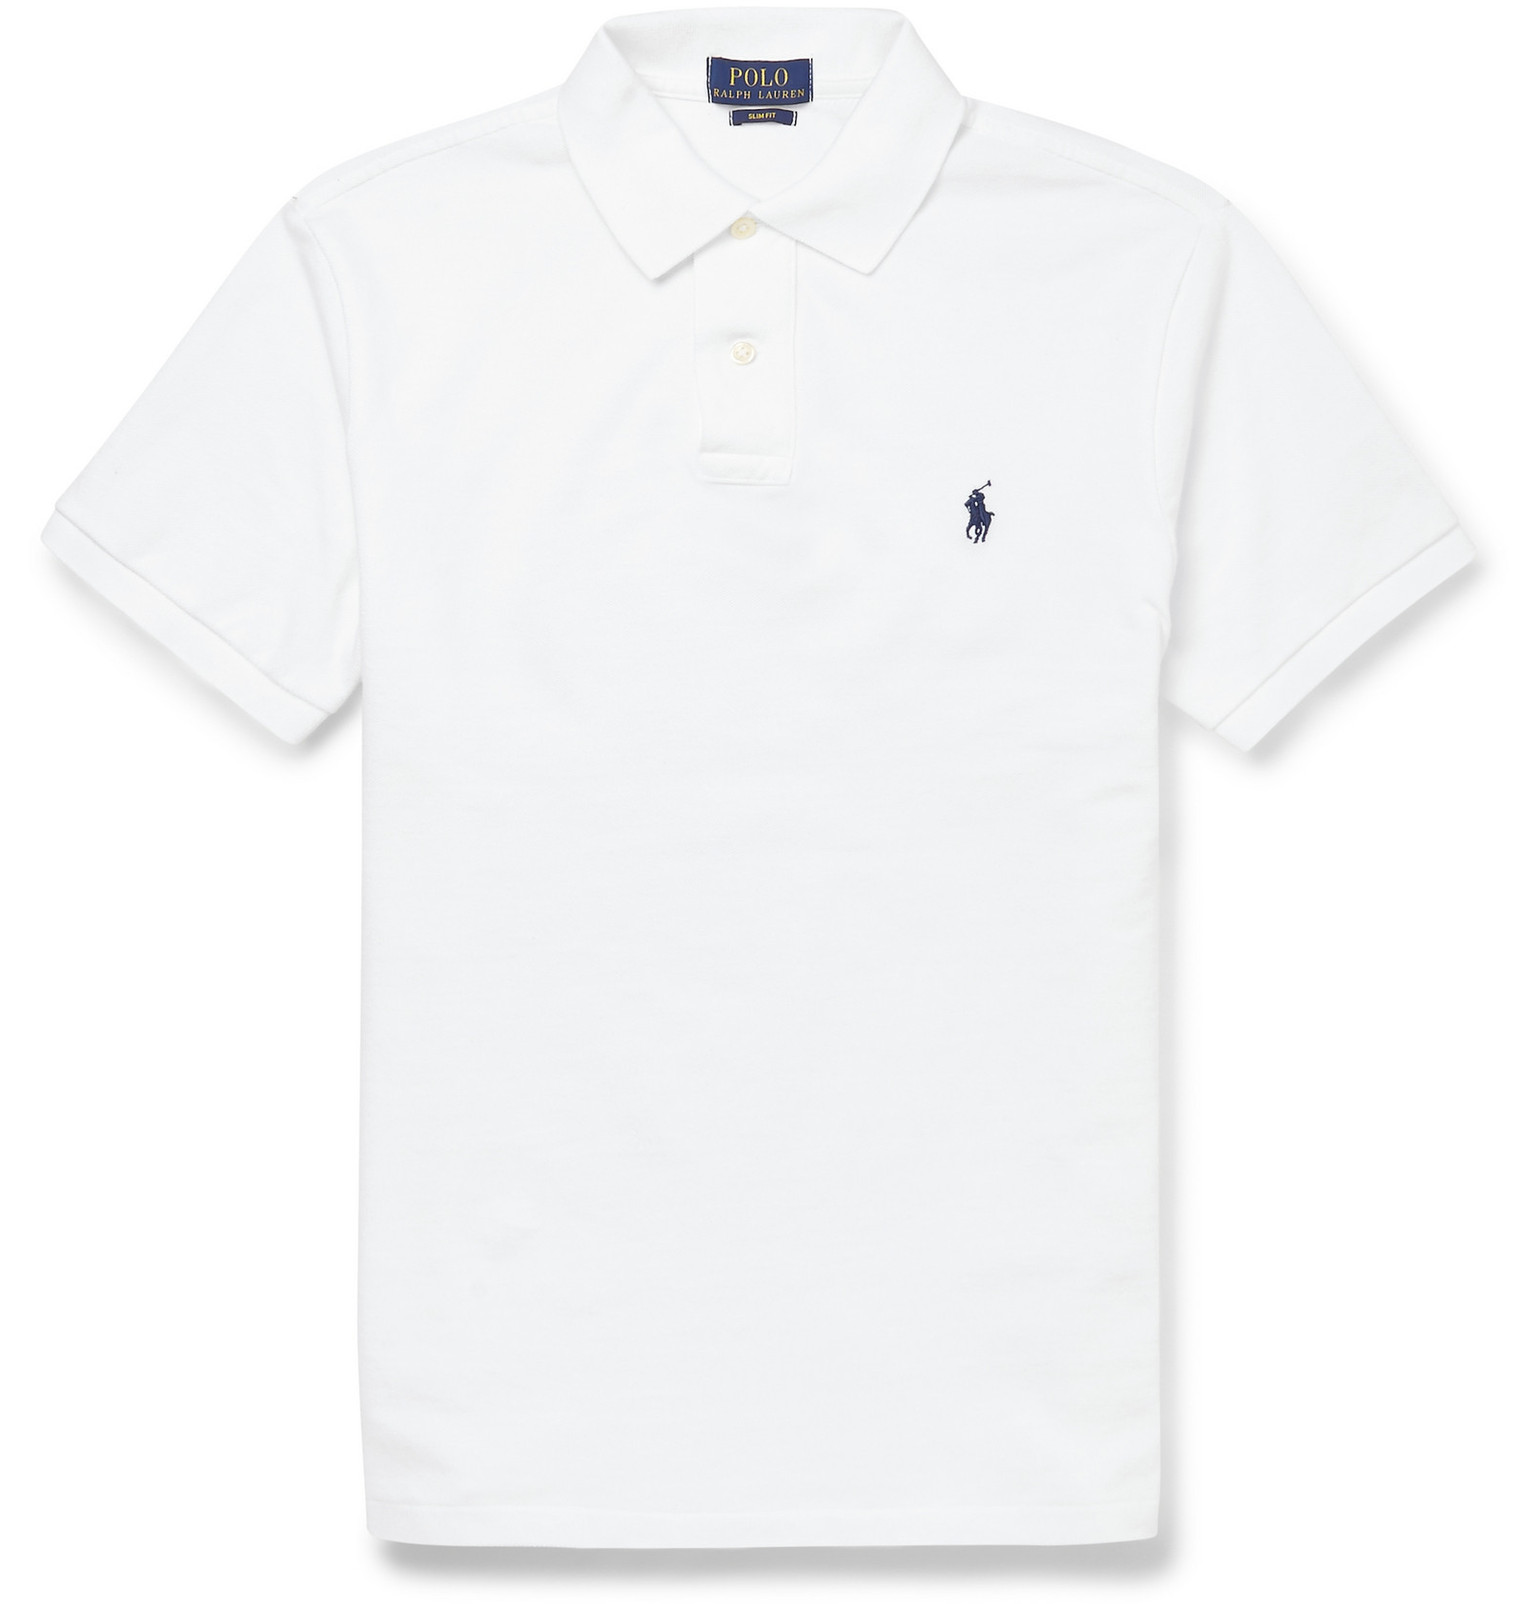 Polo Ralph LaurenSlim-Fit Cotton-Piqué Polo Shirt